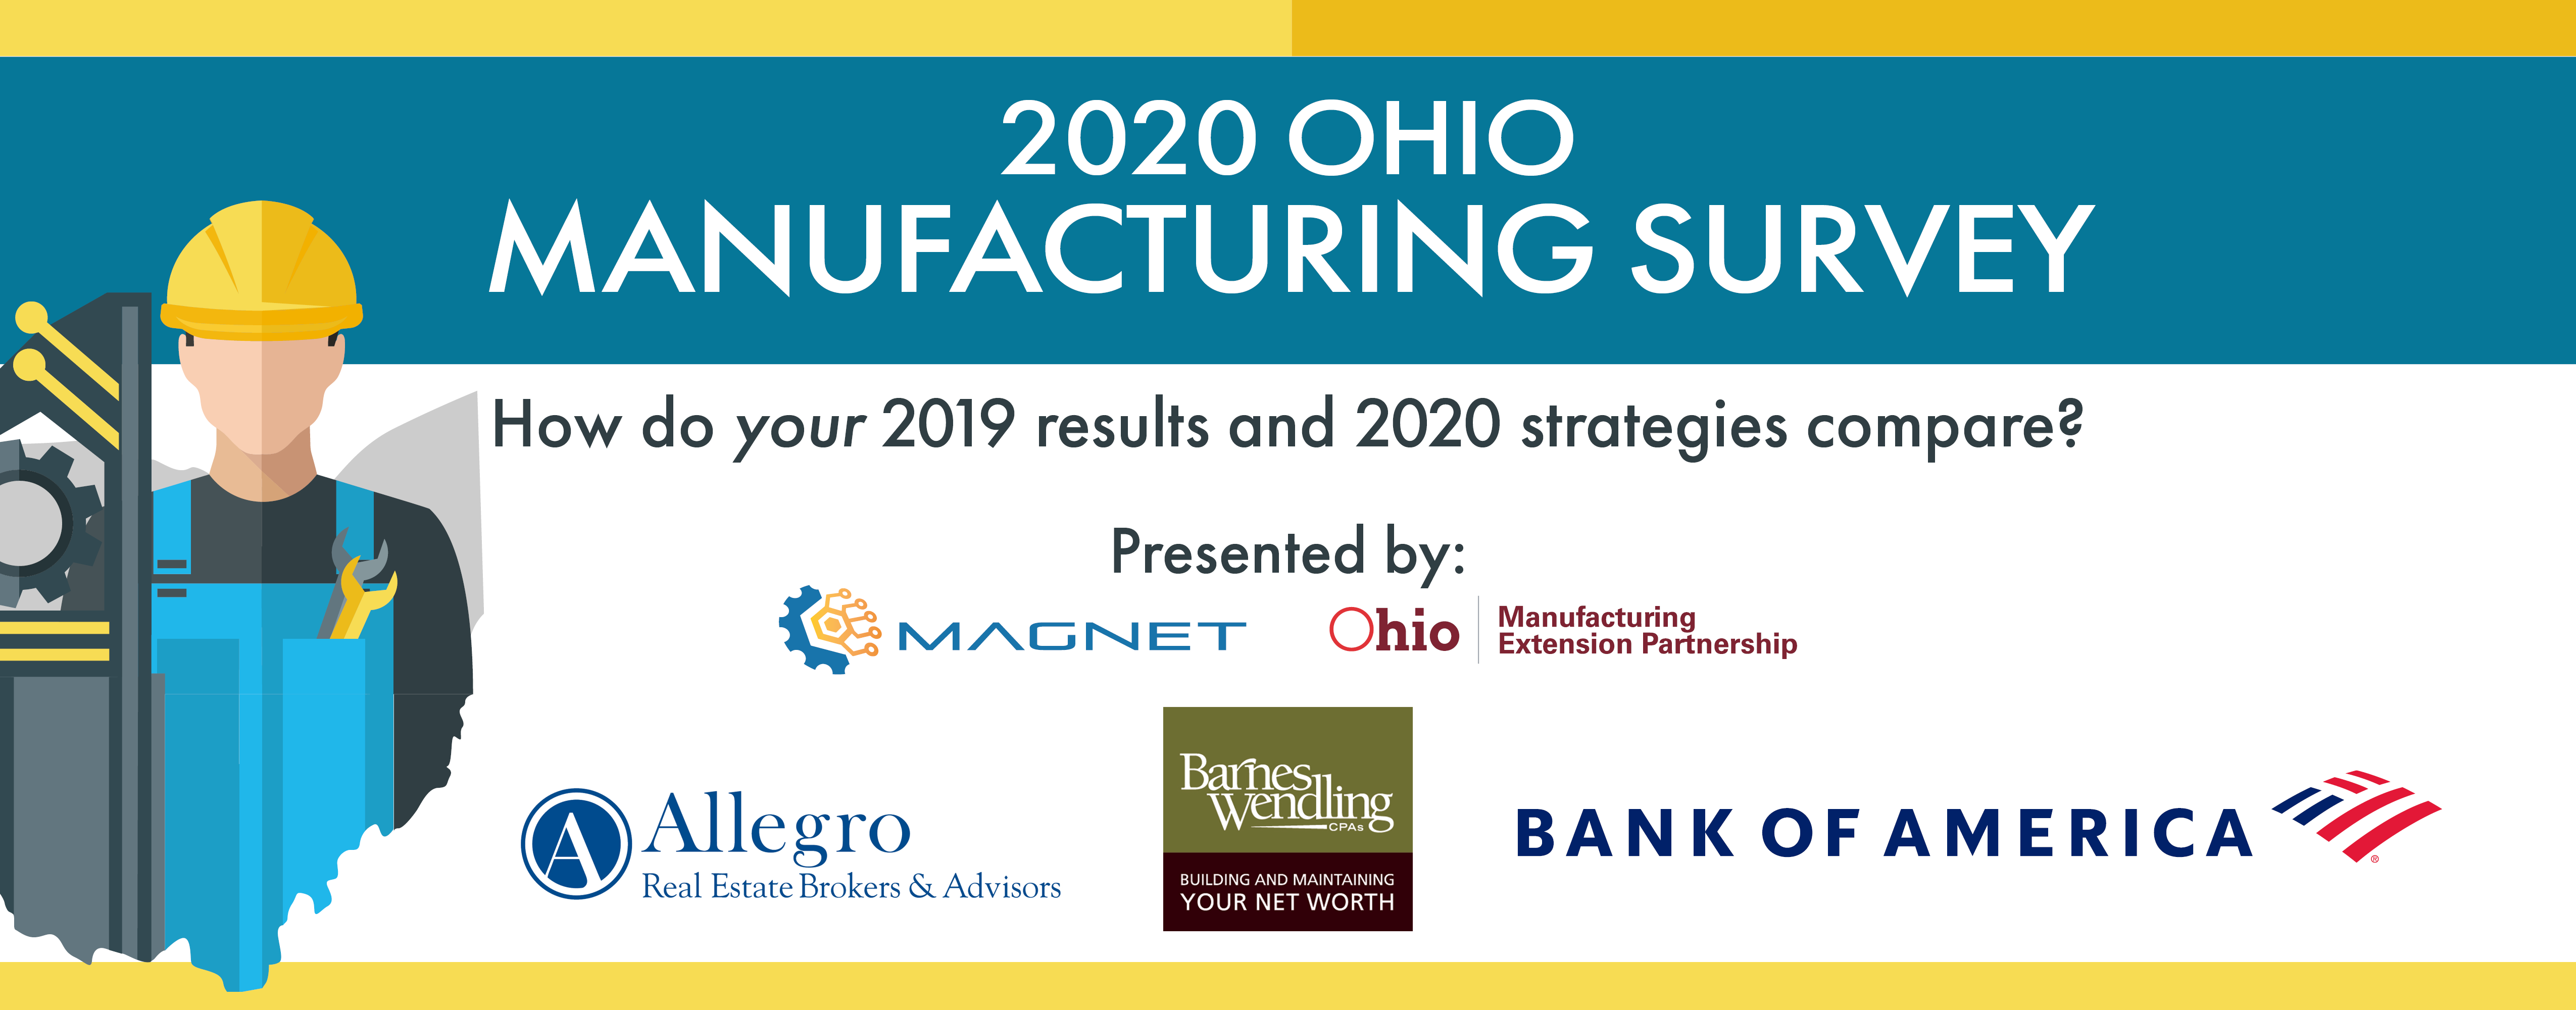 2020 Ohio Manufacturing Survey banner2